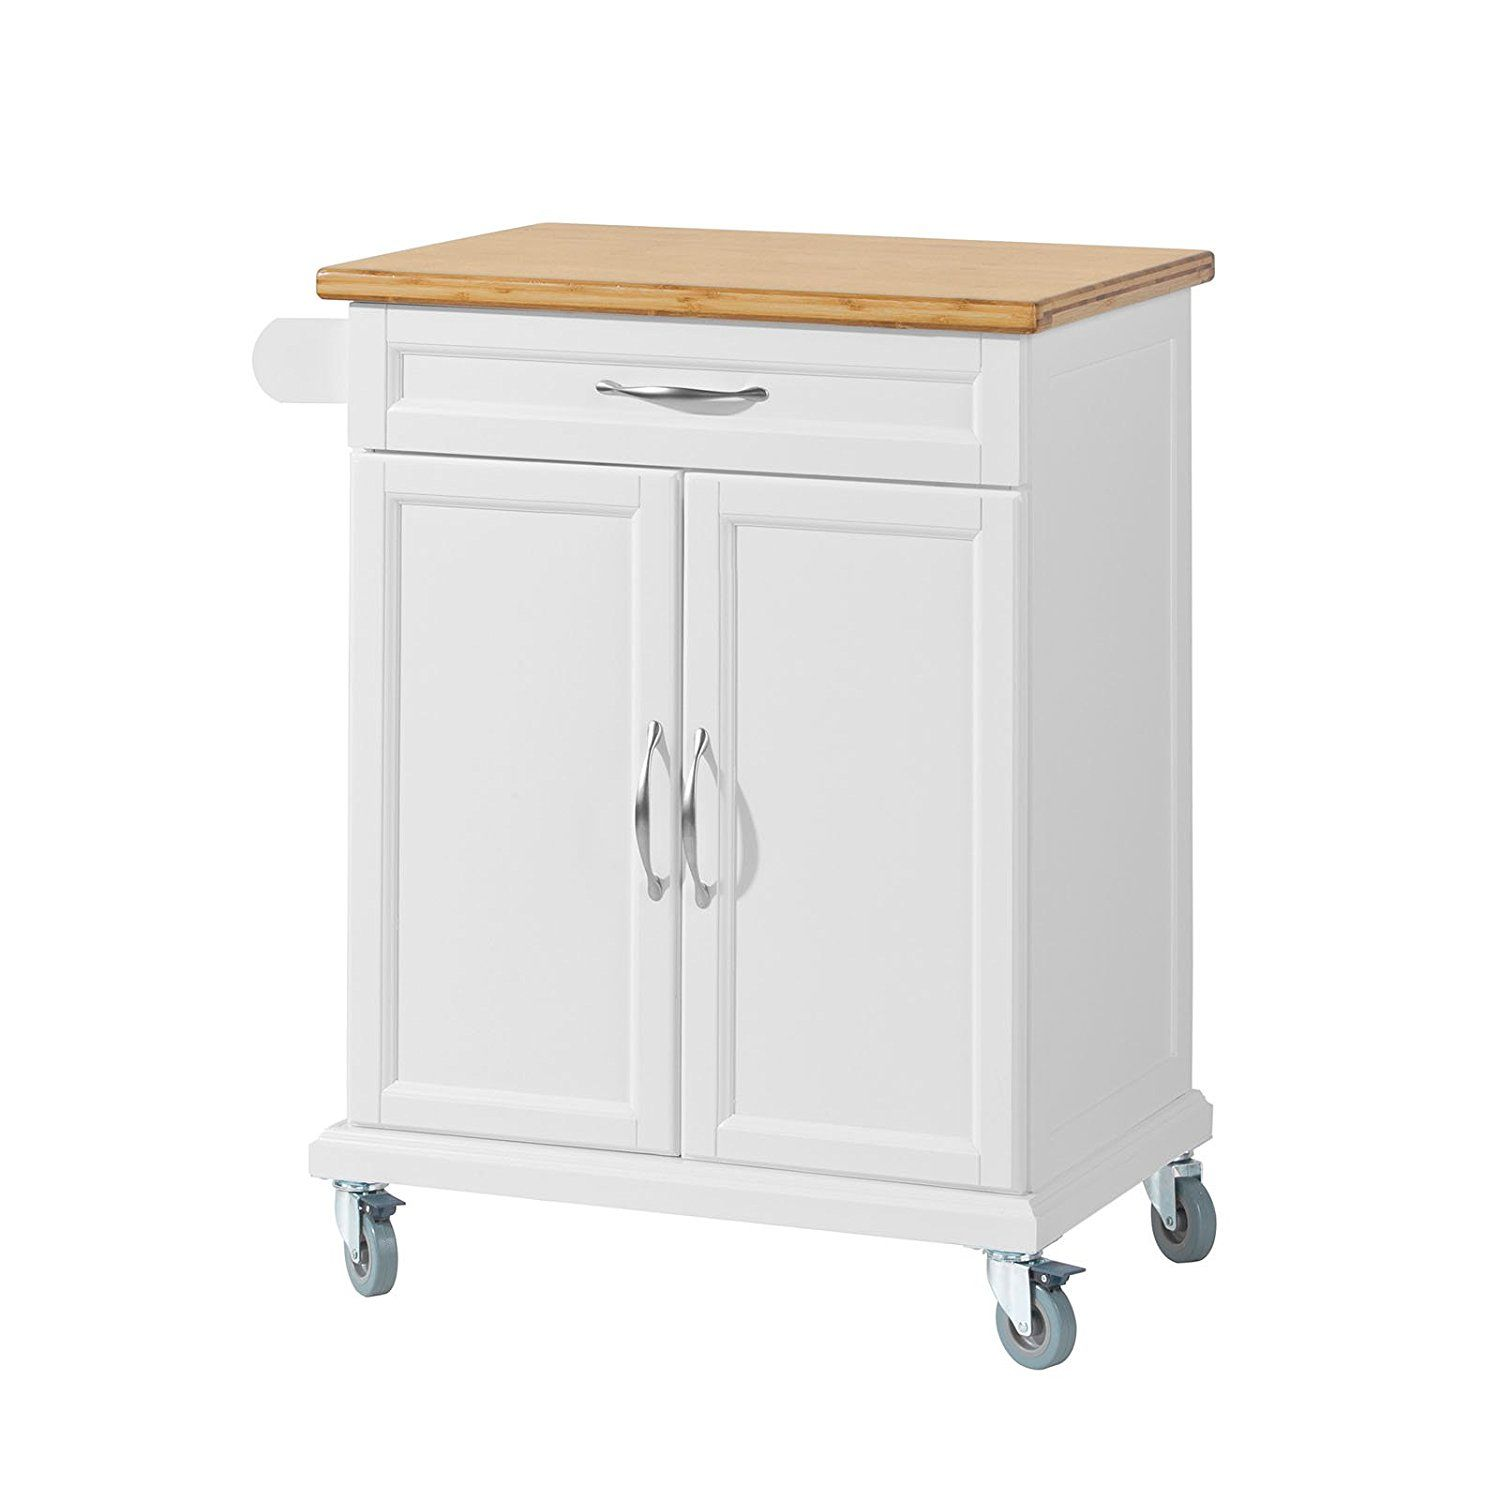 SoBuy® Kitchen Cabinet Kitchen Storage Trolley Cart with Bamboo ...